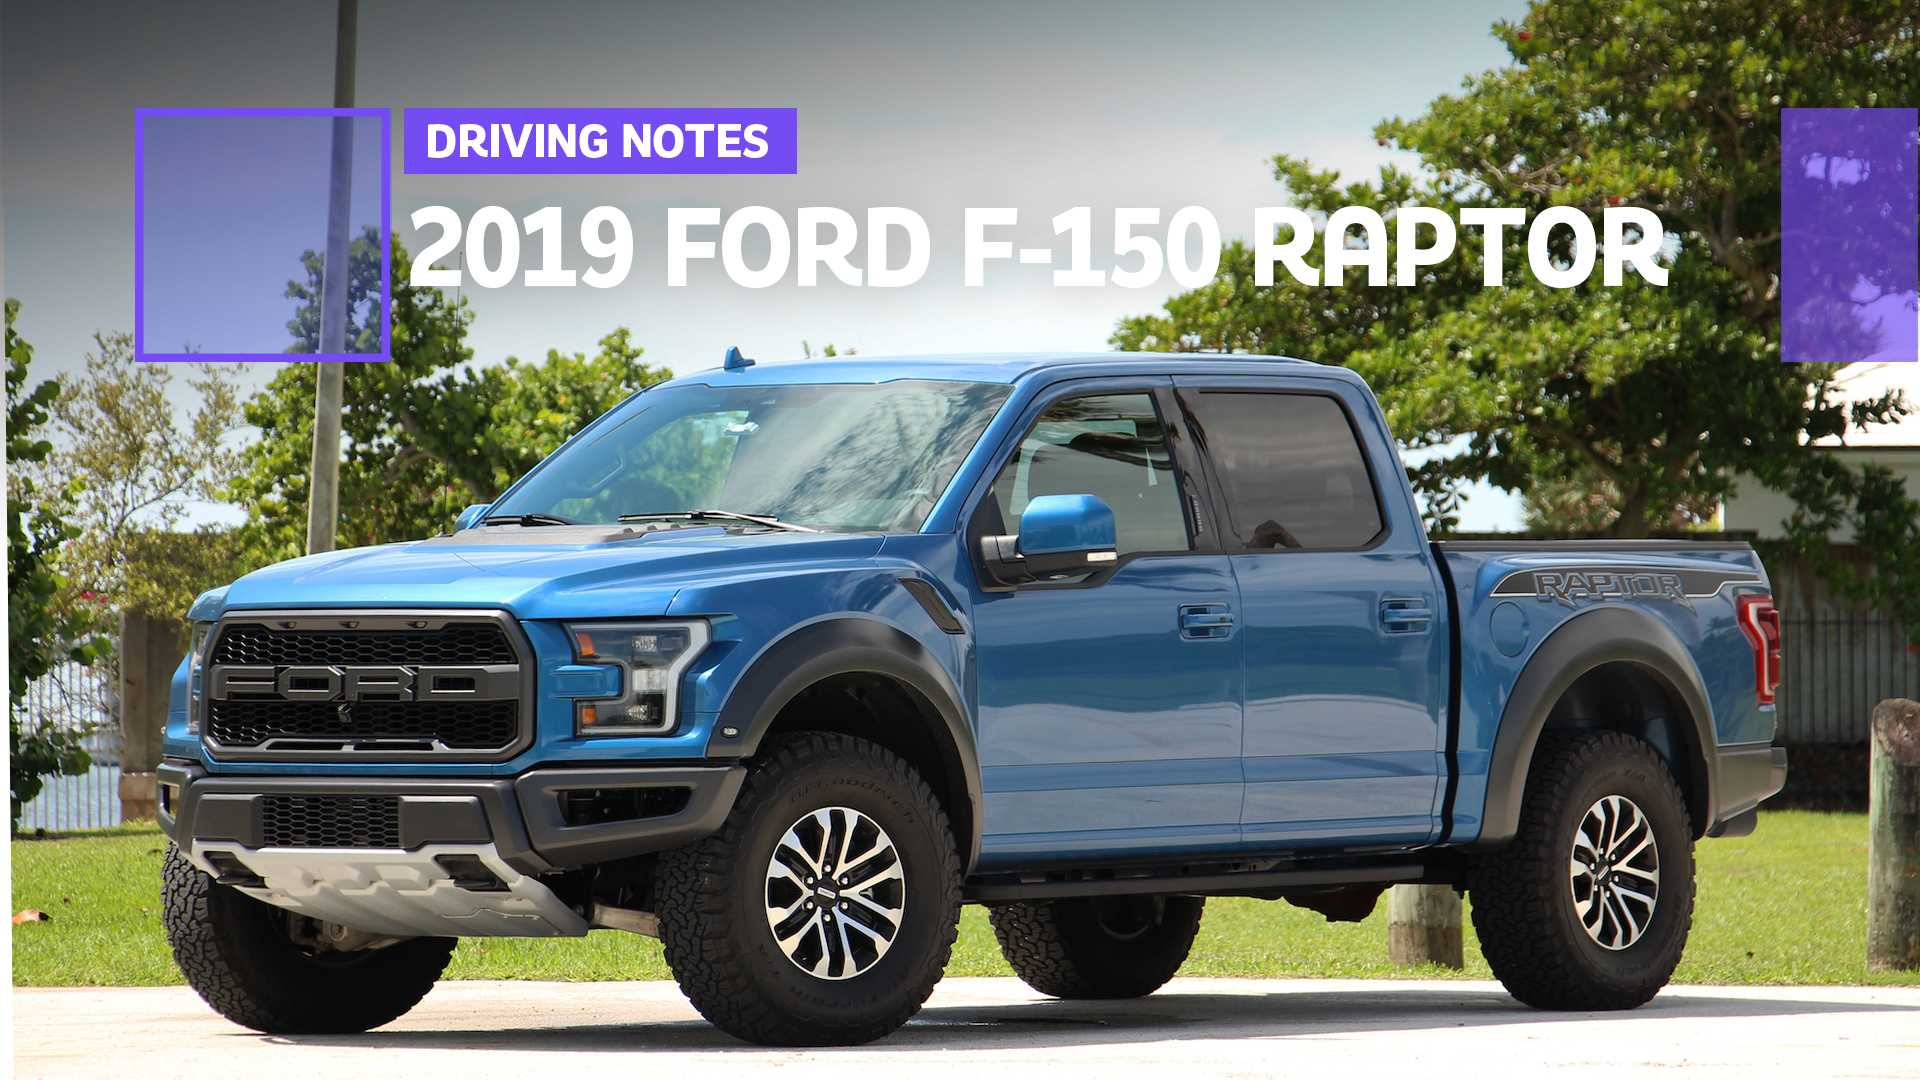 2019 Ford F 150 Raptor Drive Notes More Teeth